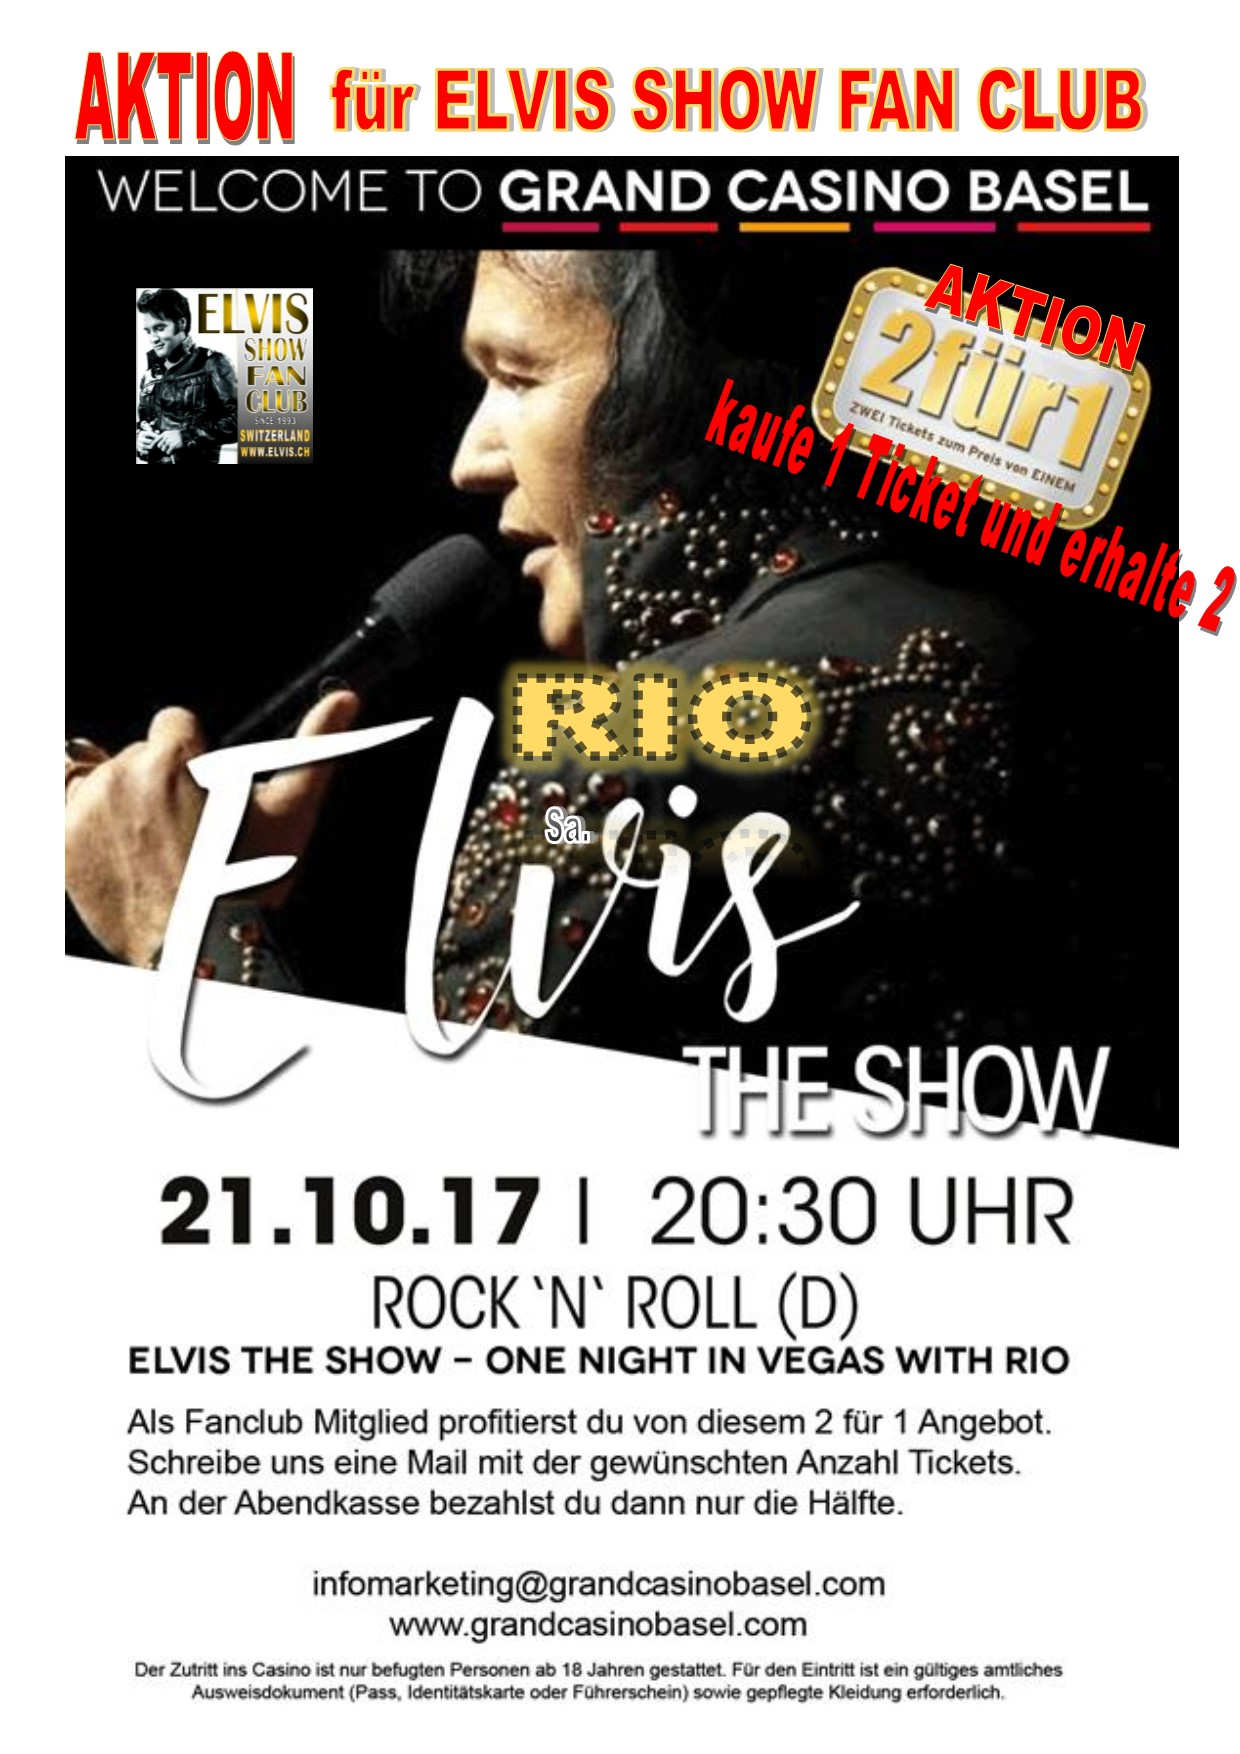 Rio - Elvis The Show 21.10.17 Basel